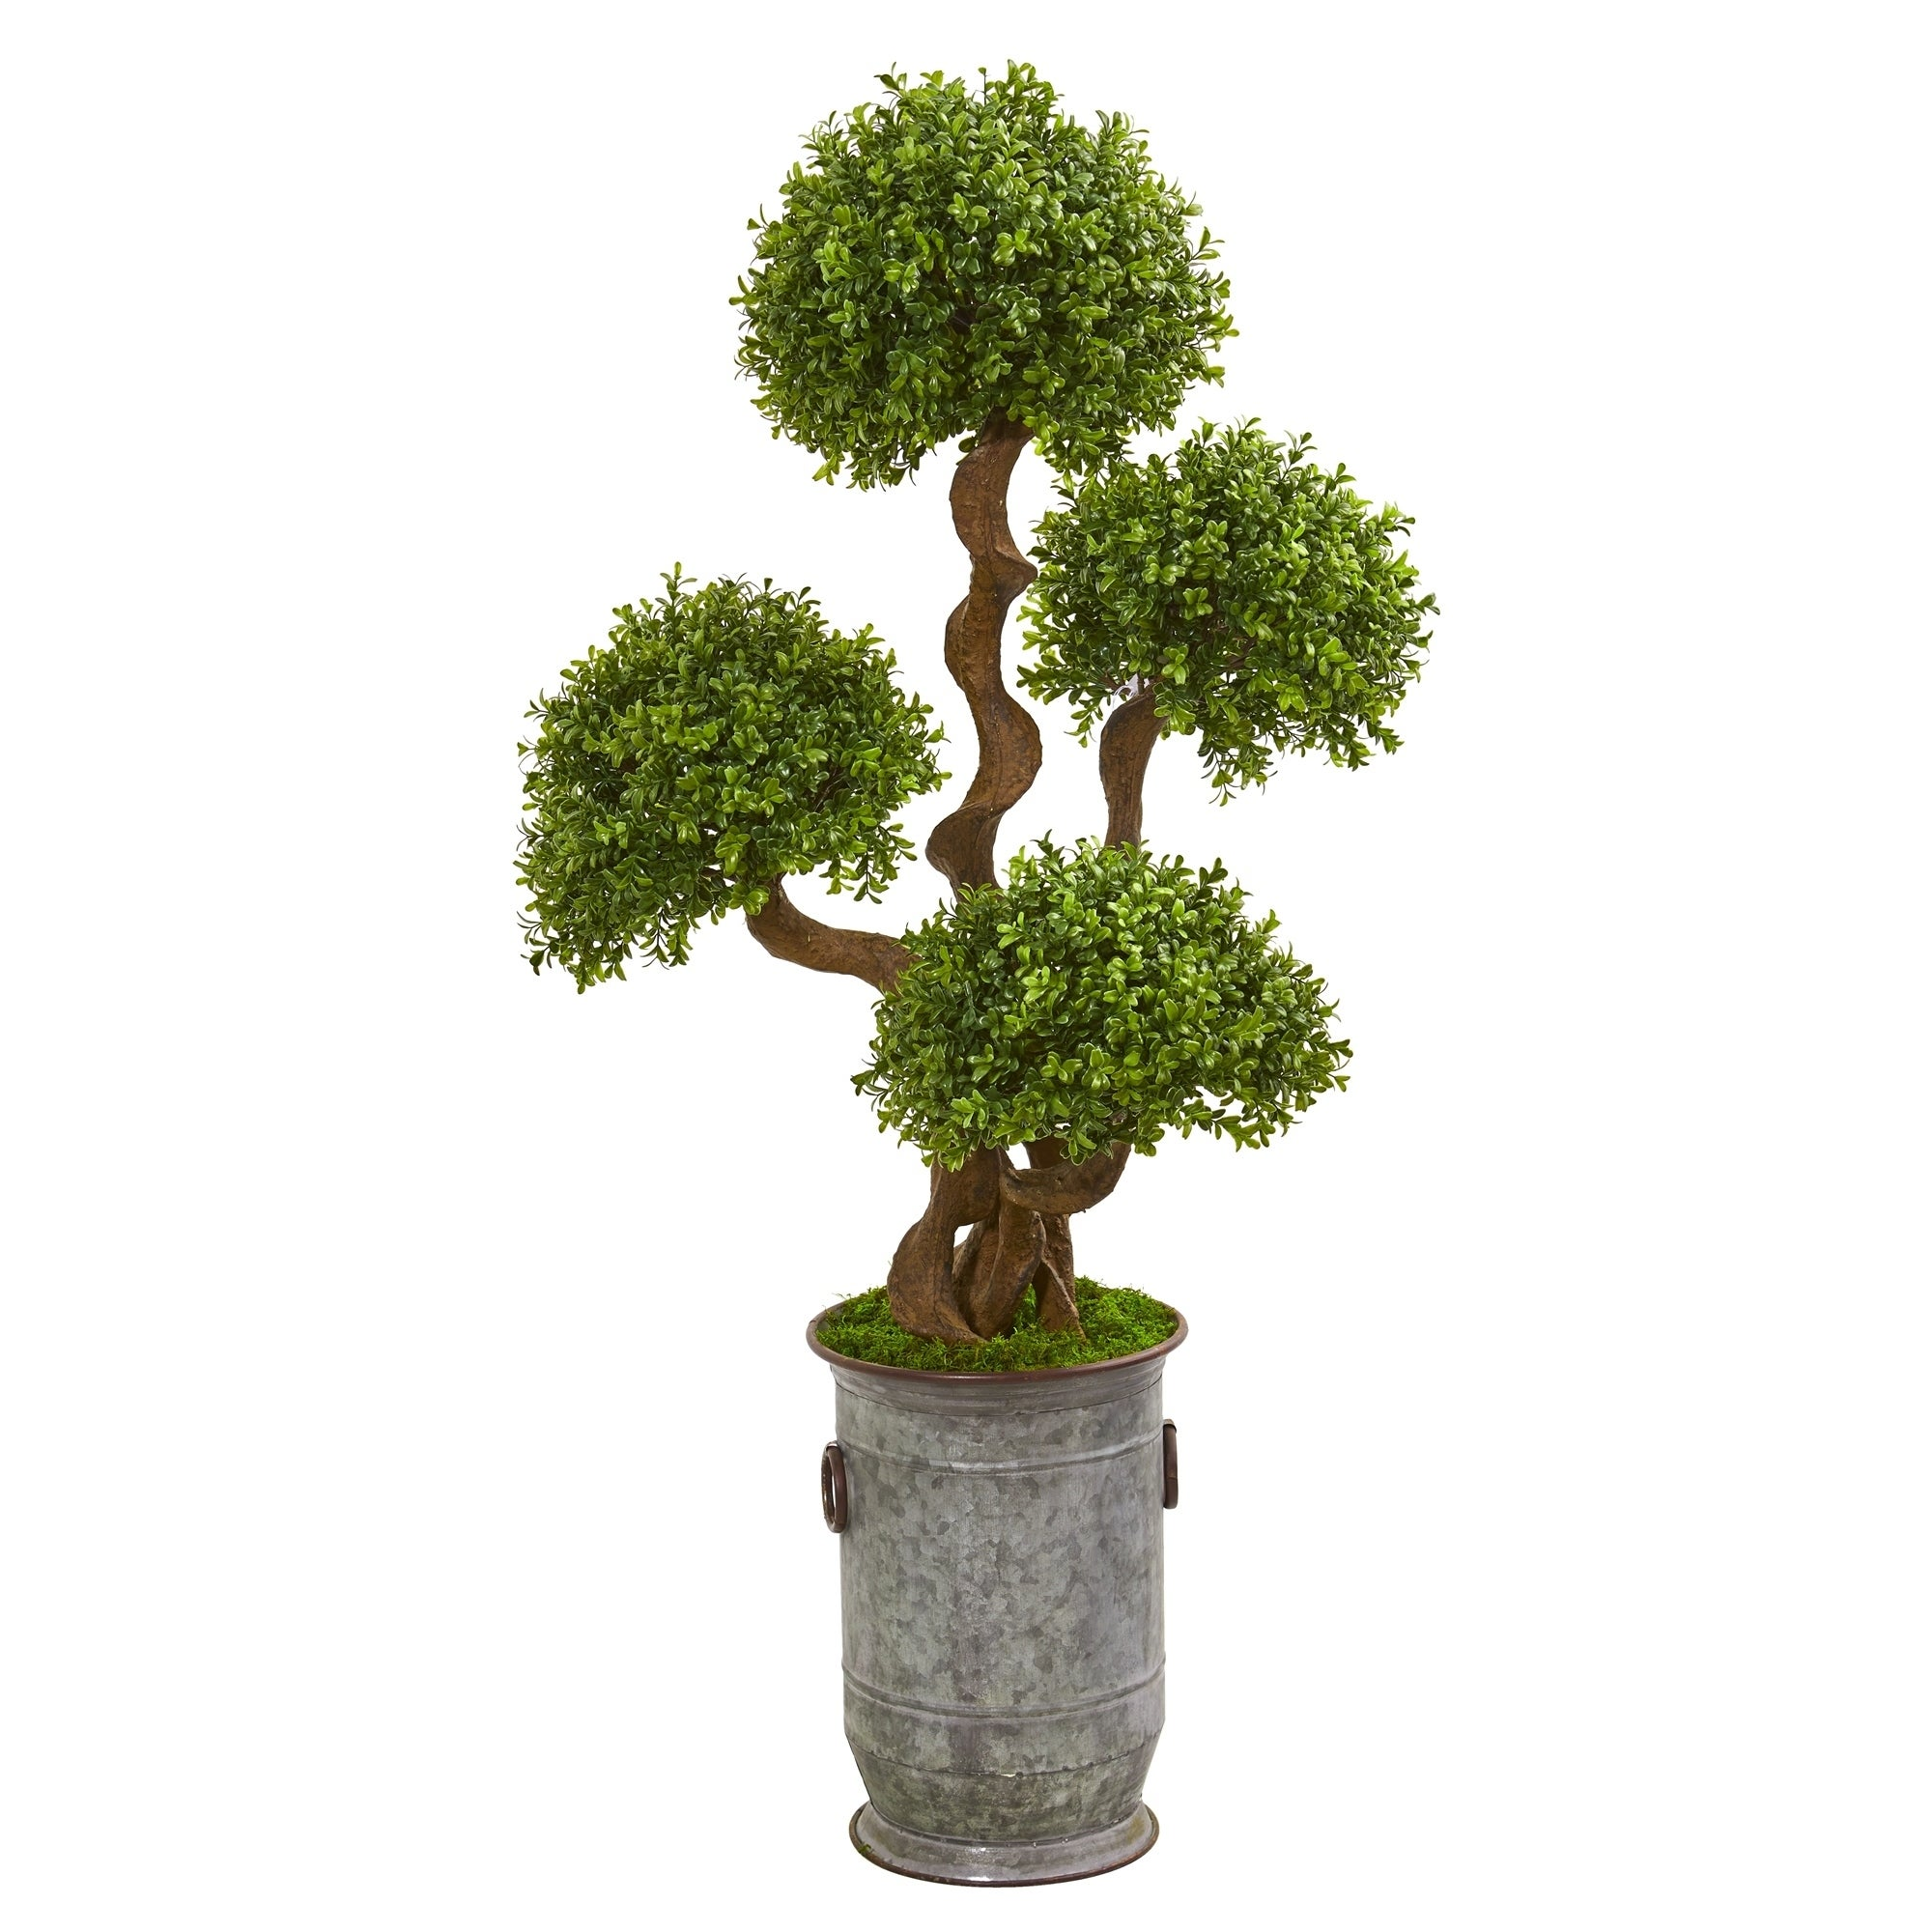 50 Triple Ball Boxwood Artificial Topiary Tree in Metal Planter